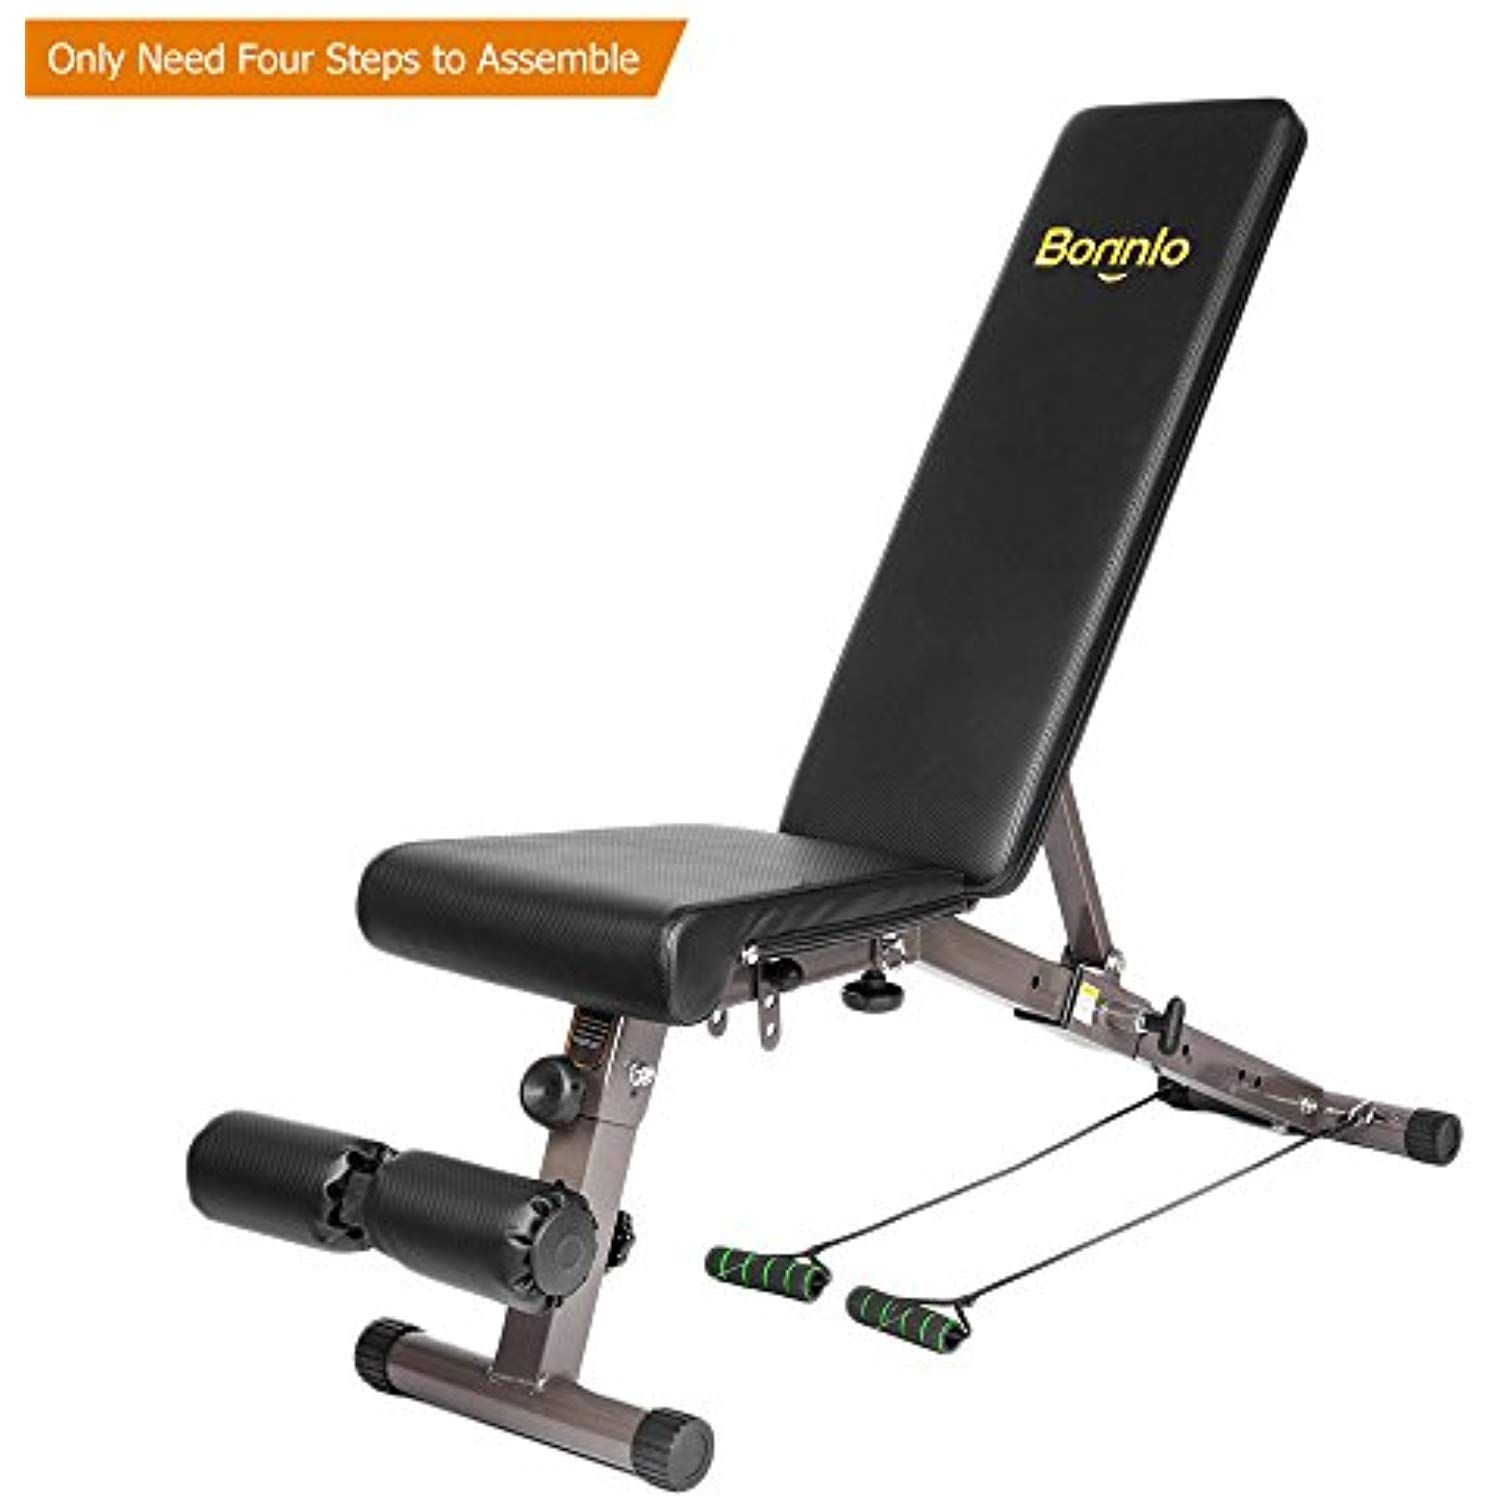 Bonnlo Upgraded Adjustable Bench Weight Bench Press For Body Workout Fitness 660 Lbs Capacity Workout Bench Weight Benches Fitness Body Recumbent Bike Workout